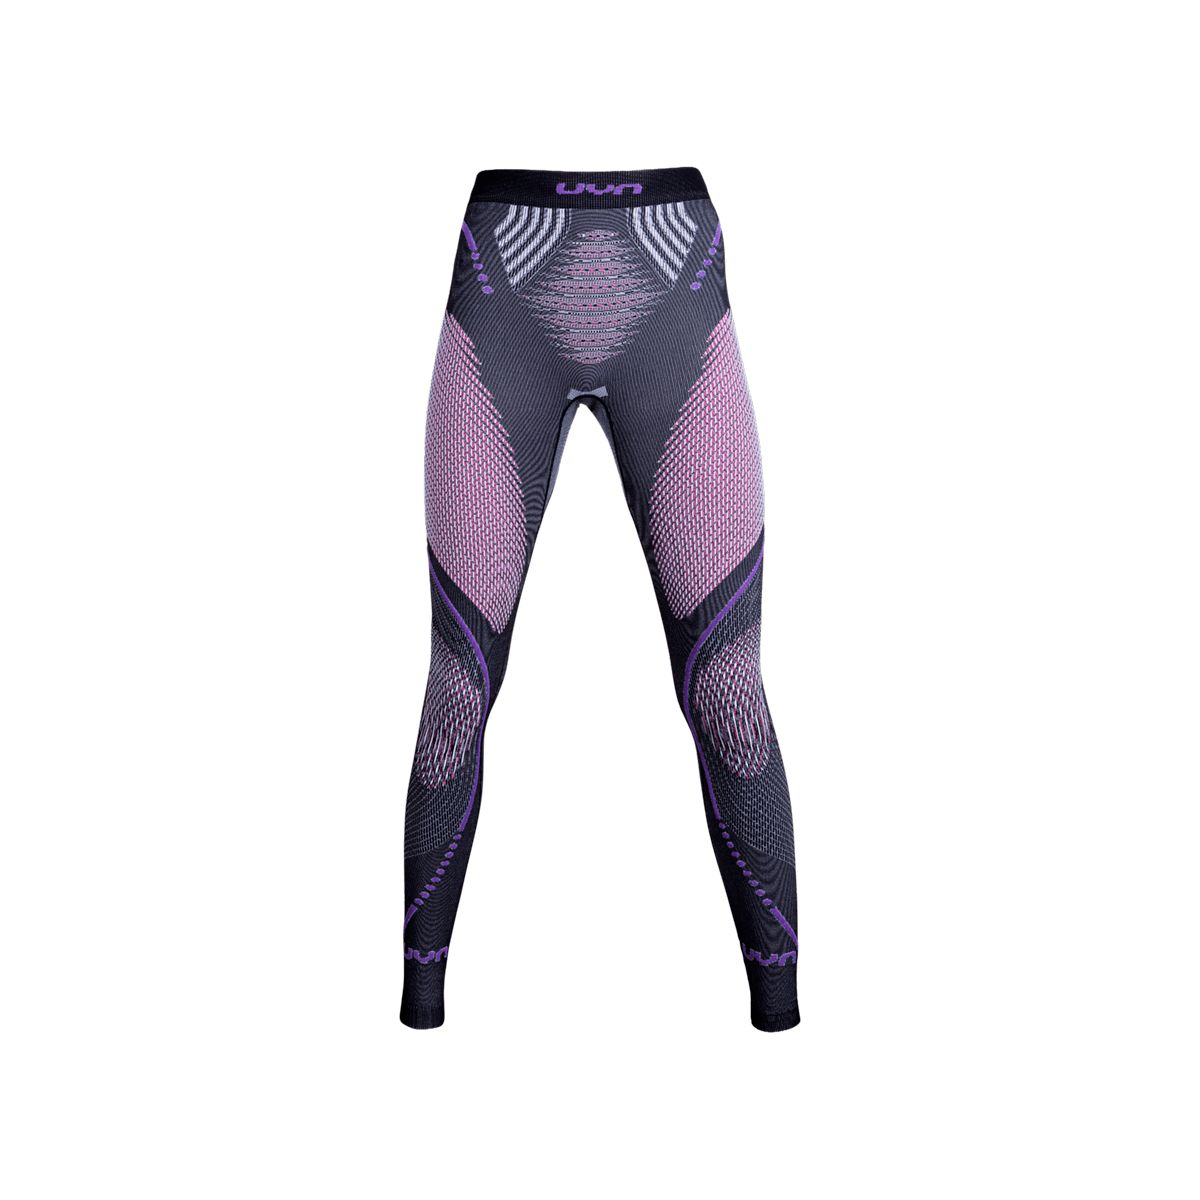 LADY EVOLUTYON UW PANTS MELANGE underpants